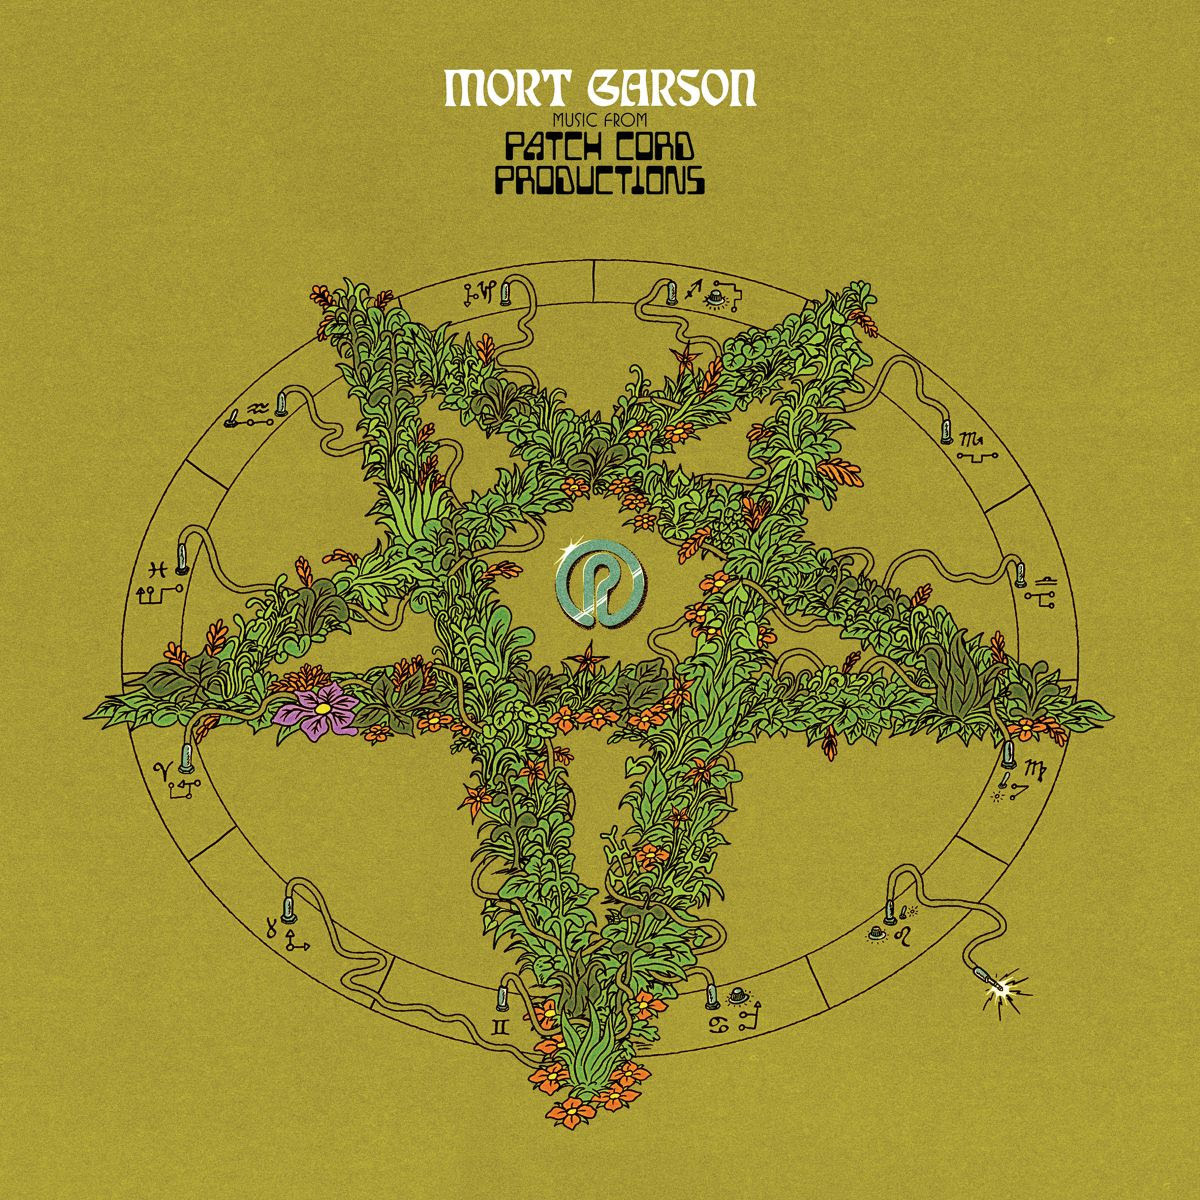 Sacred Bones Records Mort Garson - Music From Patch Cord Productions (Coloured Vinyl)